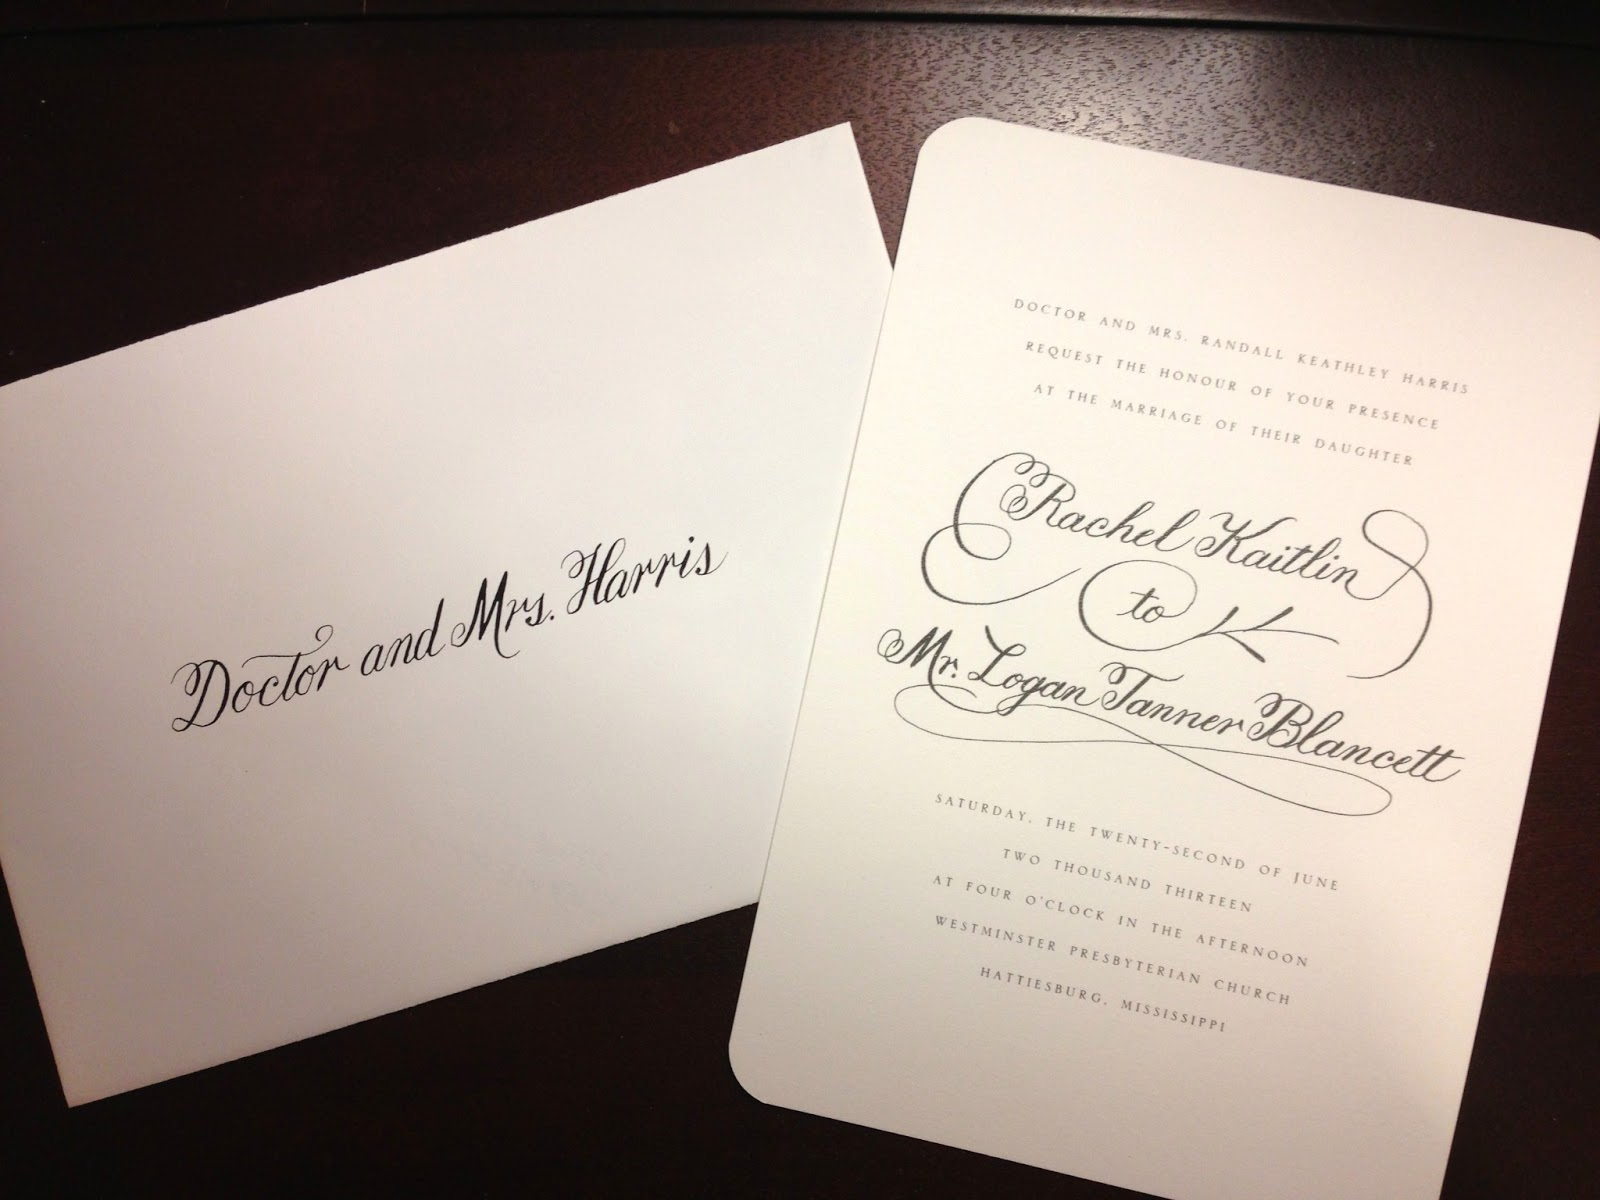 How To Write On Envelope For Wedding Invitations: Writing By Hand: Wedding Calligraphy